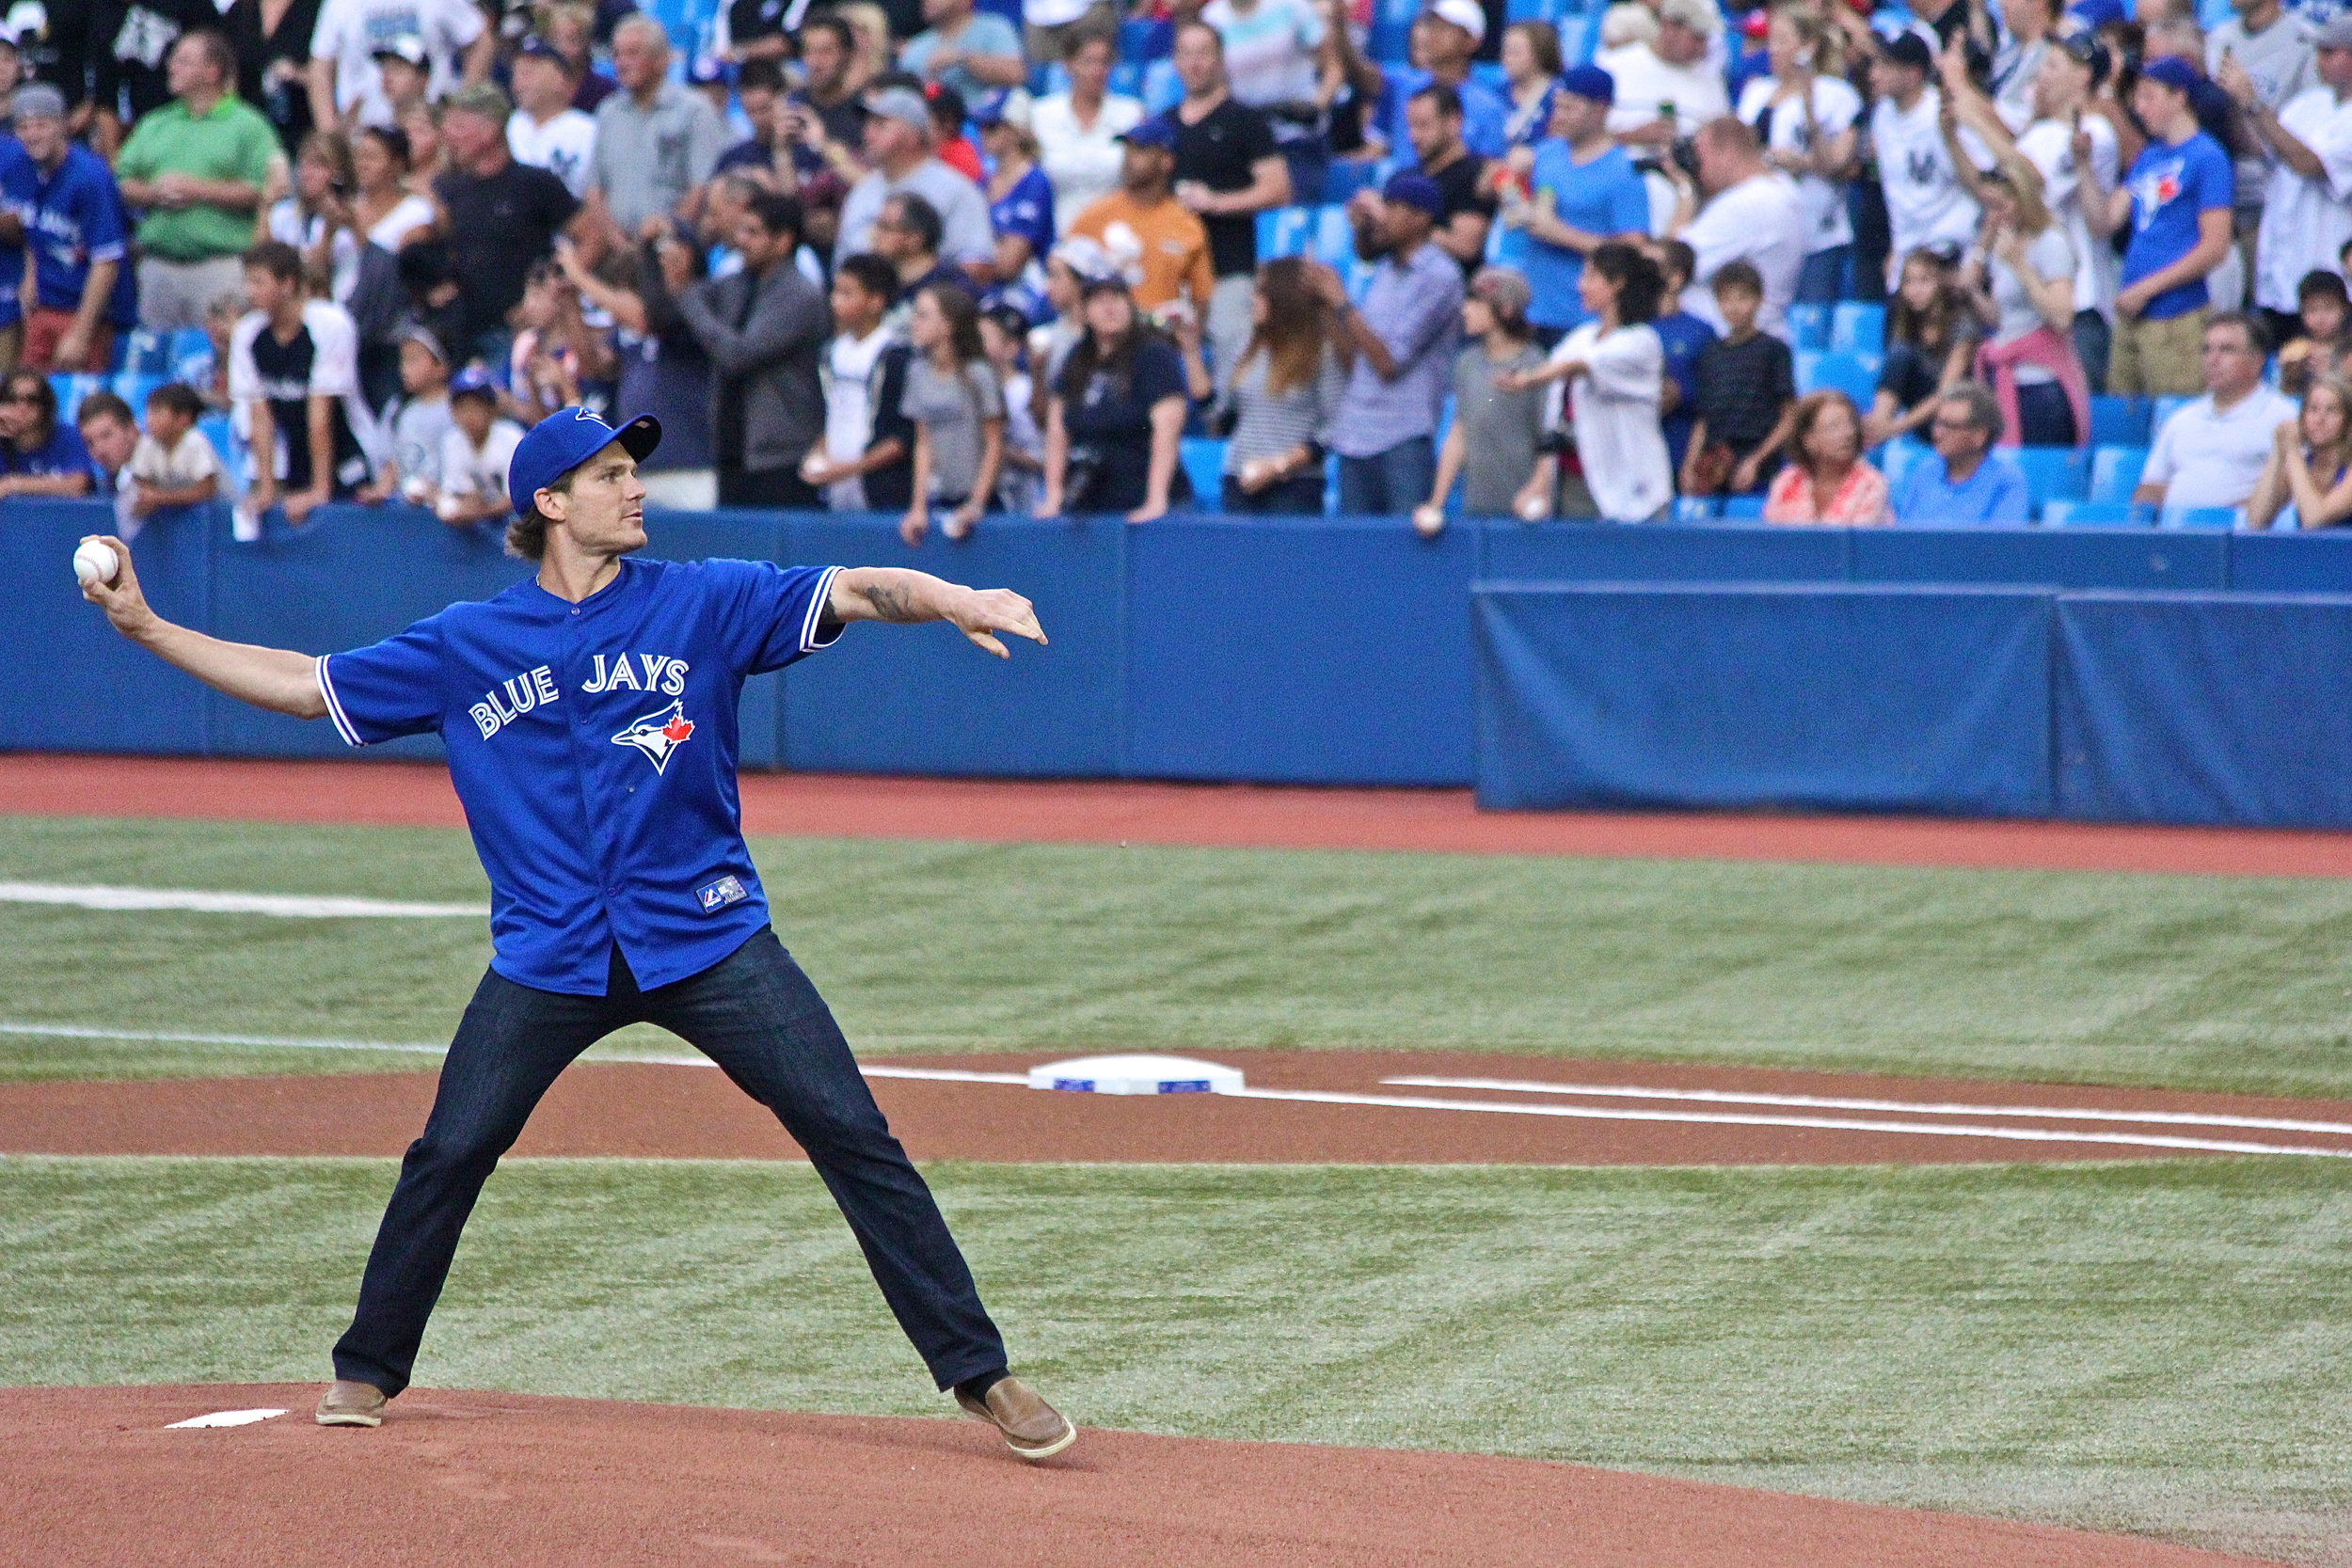 Toronto Maple Leafs forward David Clarkson throws out the first pitch